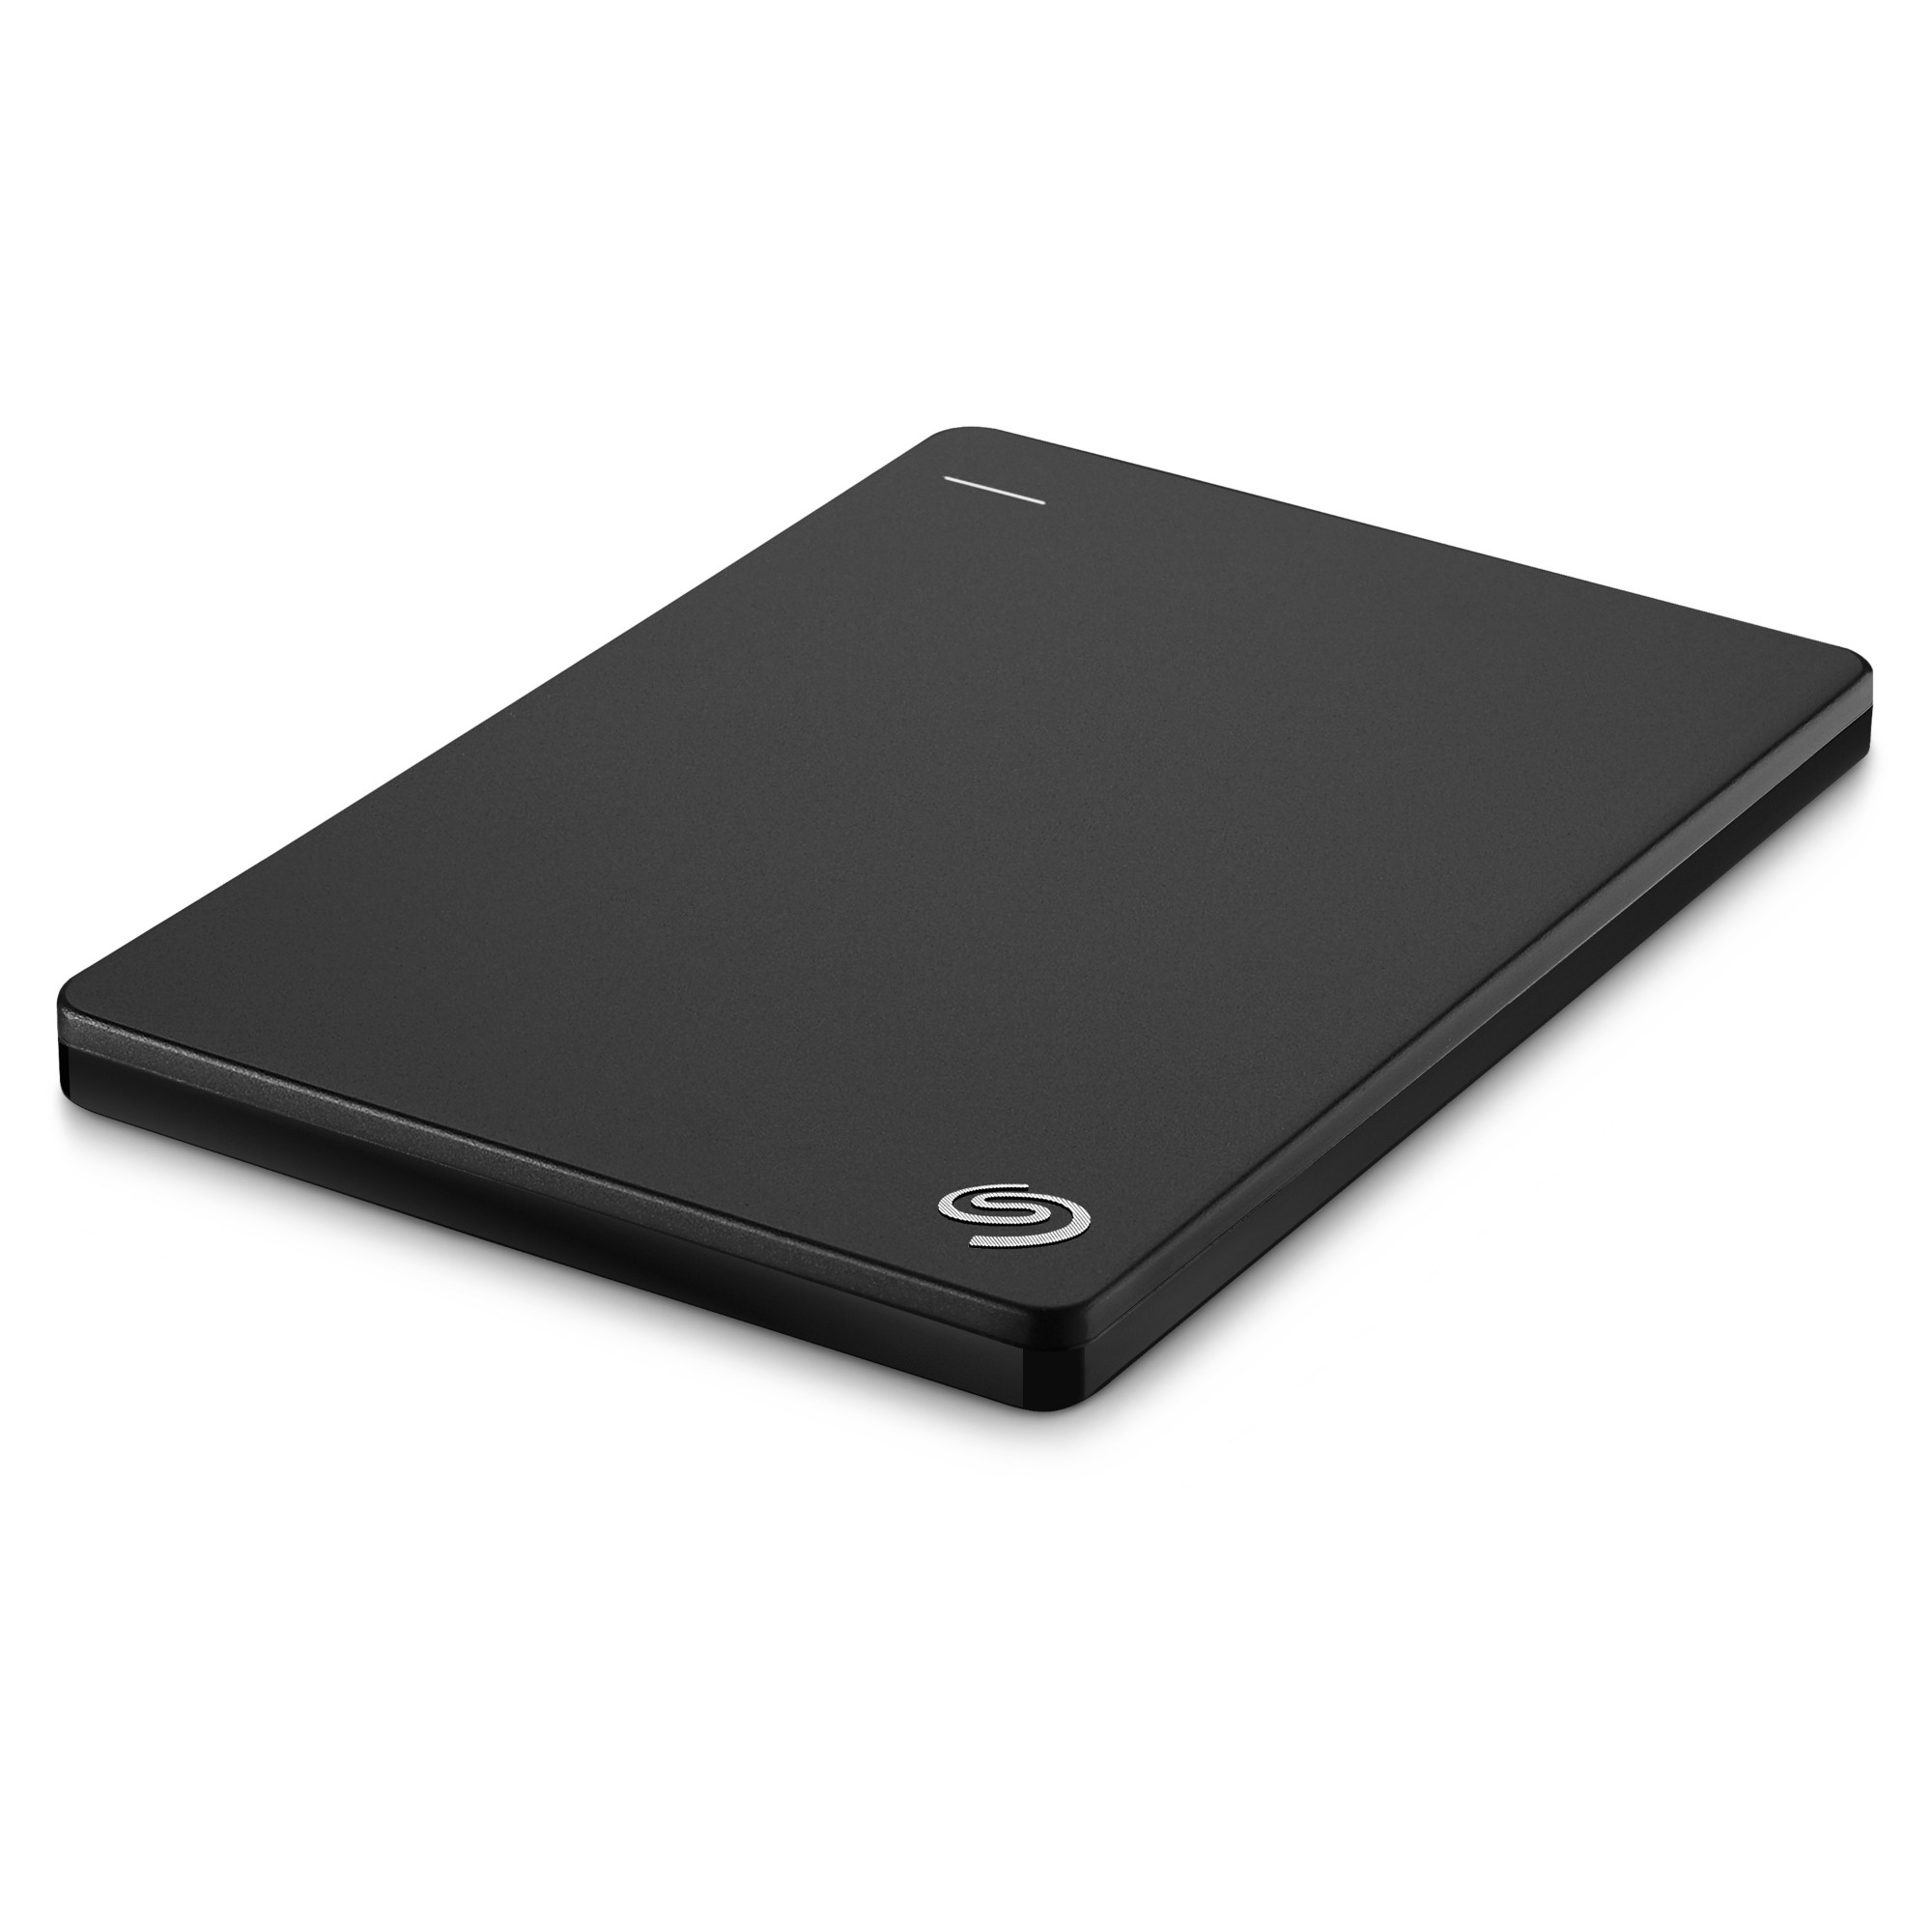 Seagate Backup Plus Slim 1tb 1000gb Black External Hard Drive